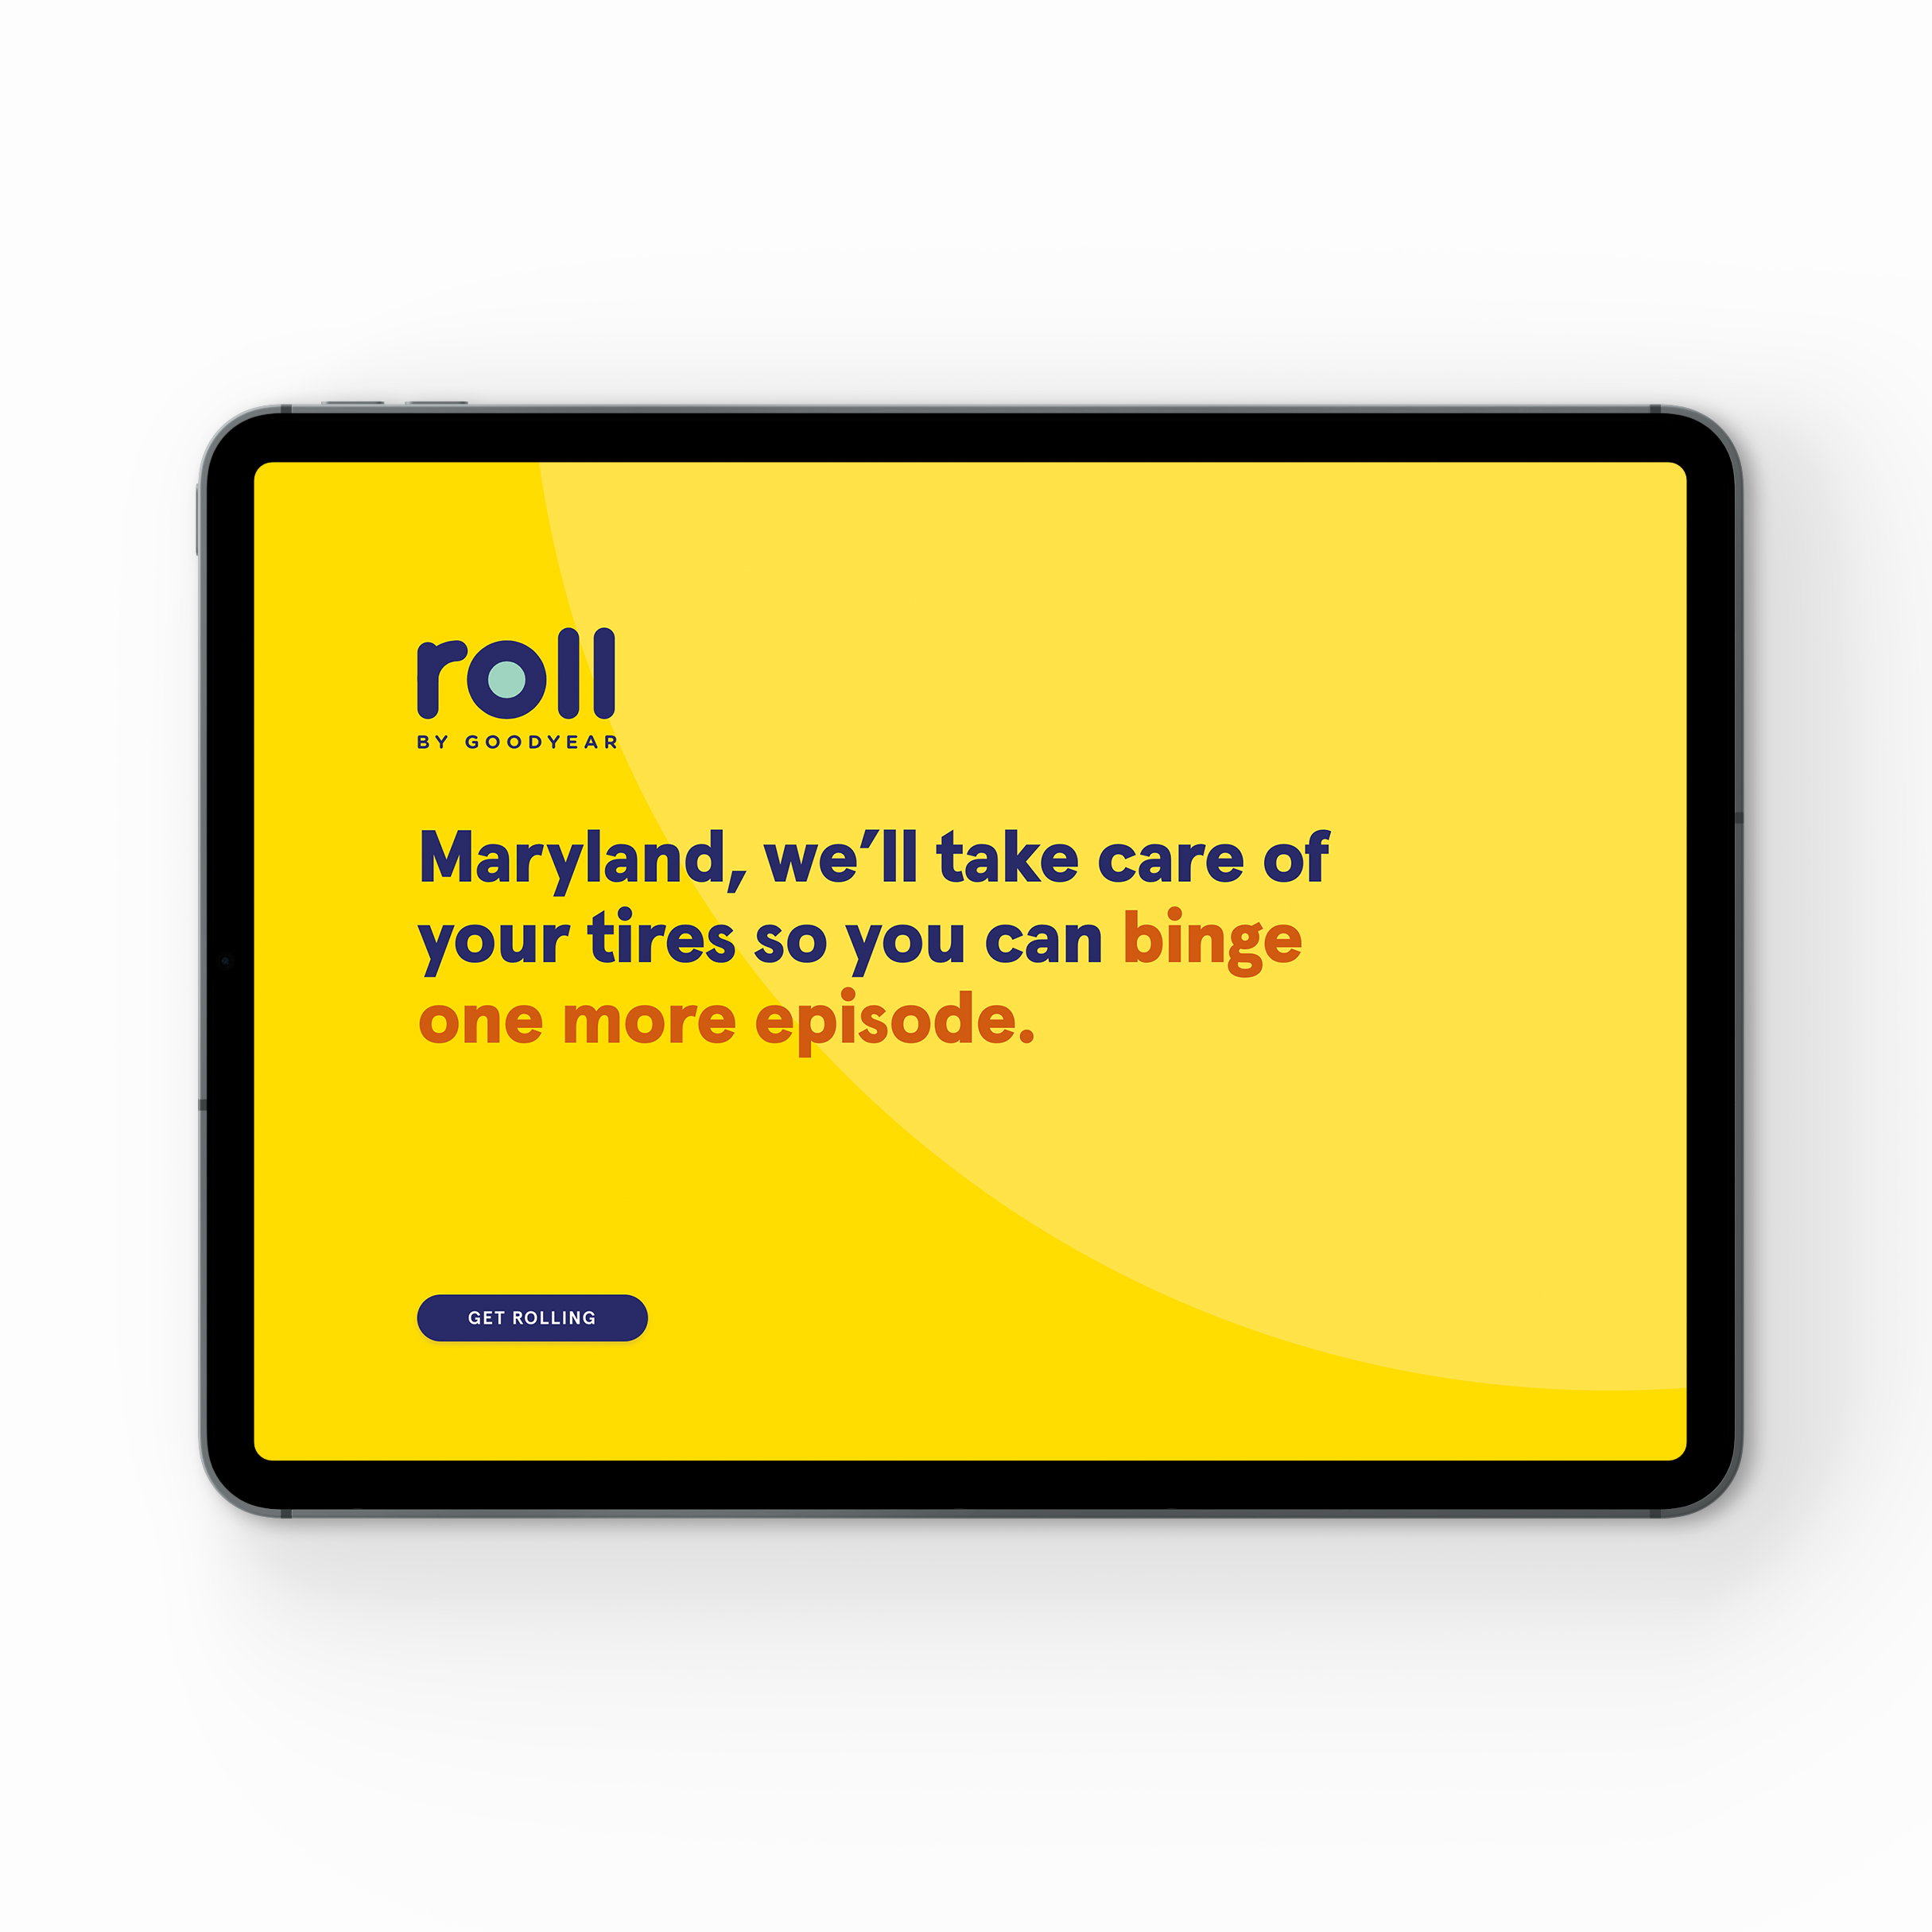 roll-ipad-home-.png